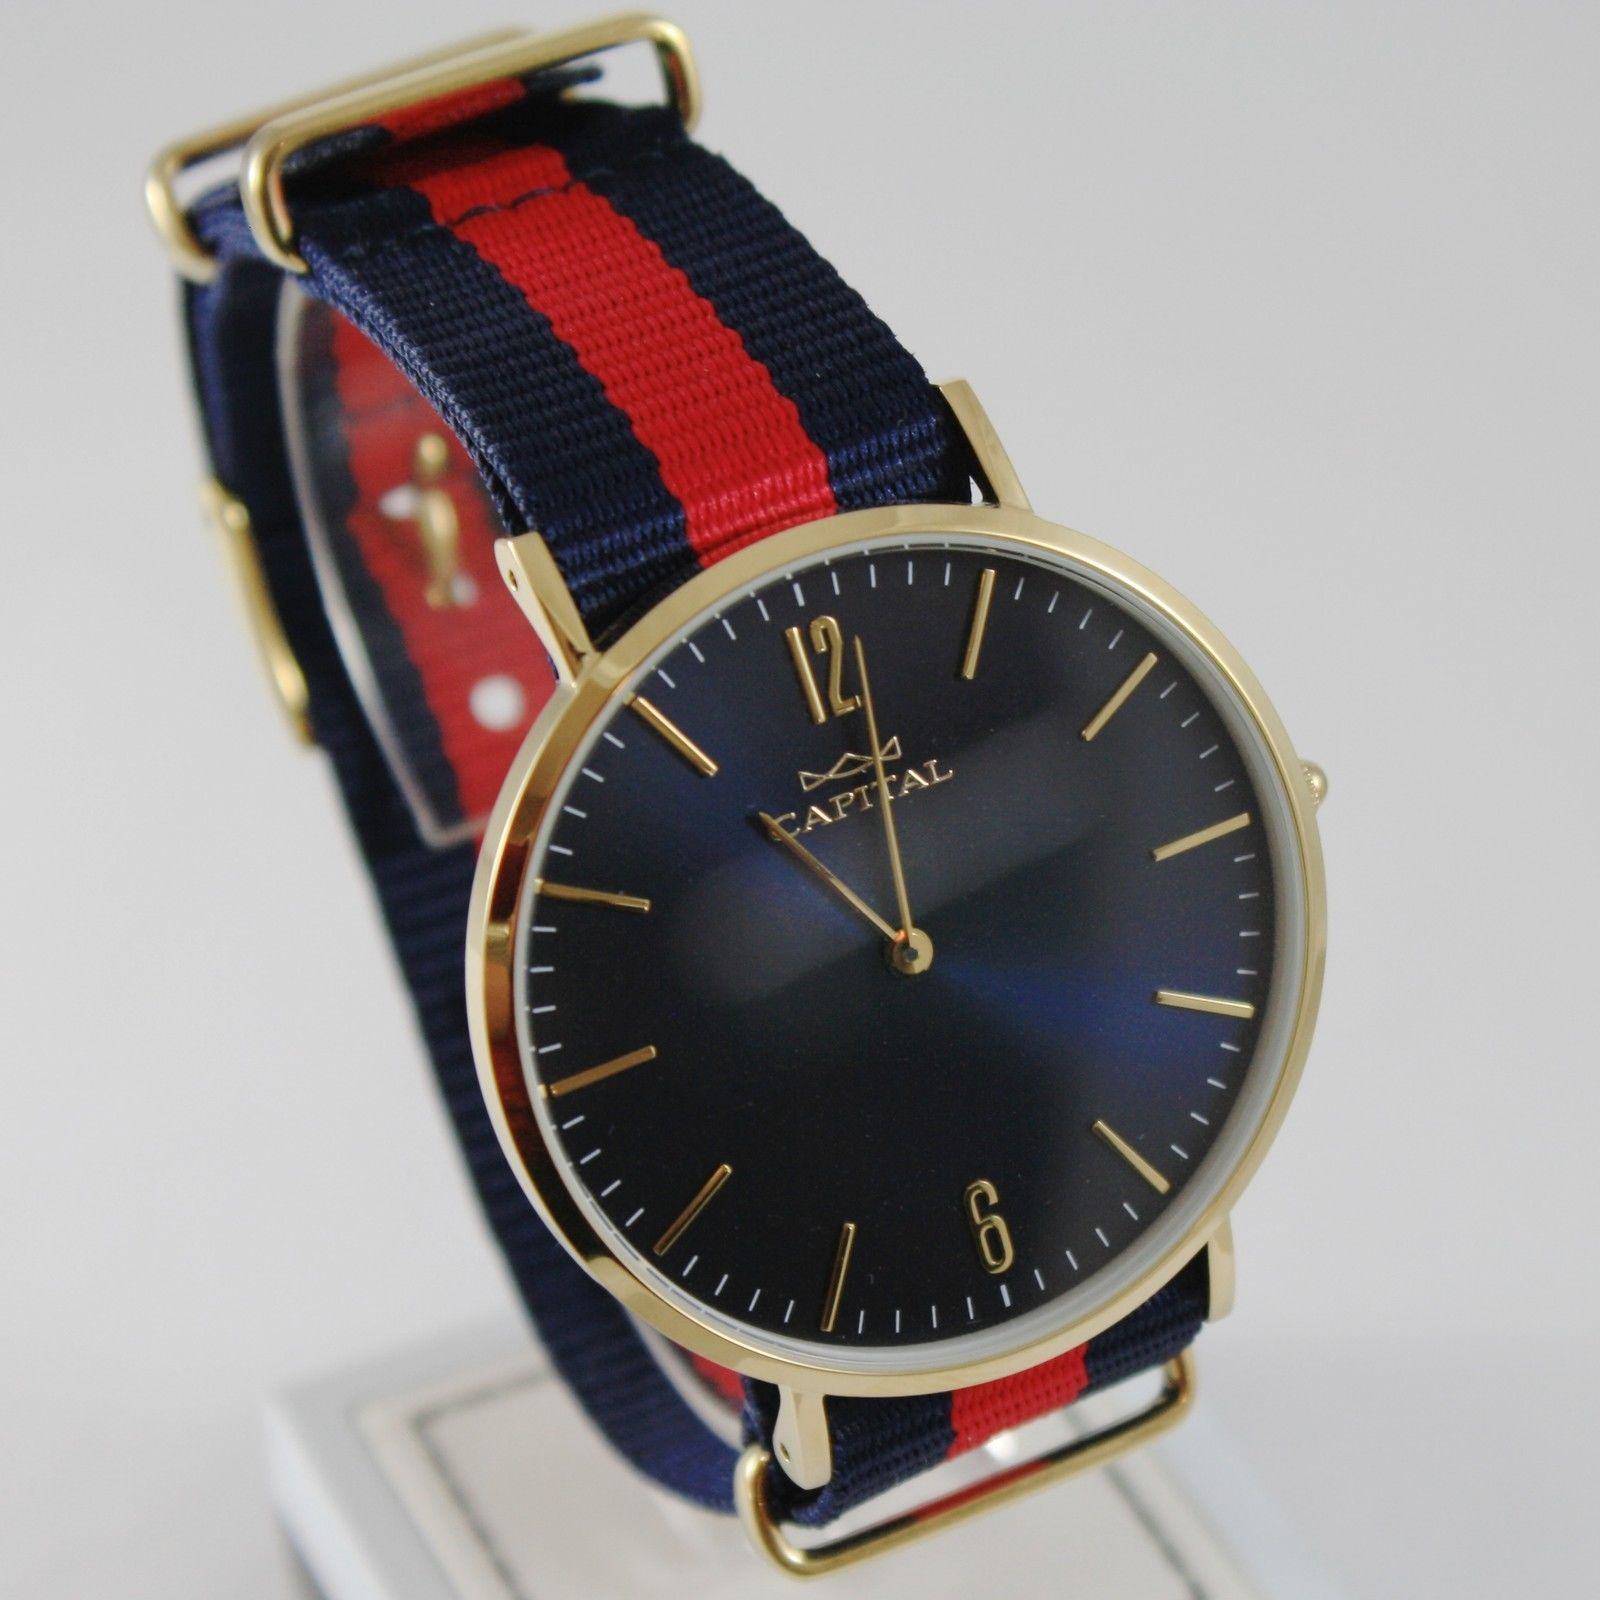 CAPITAL WATCH QUARTZ MOVEMENT 41 MM YELLOW CASE BLUE AND RED FABRIC BAND NYLON